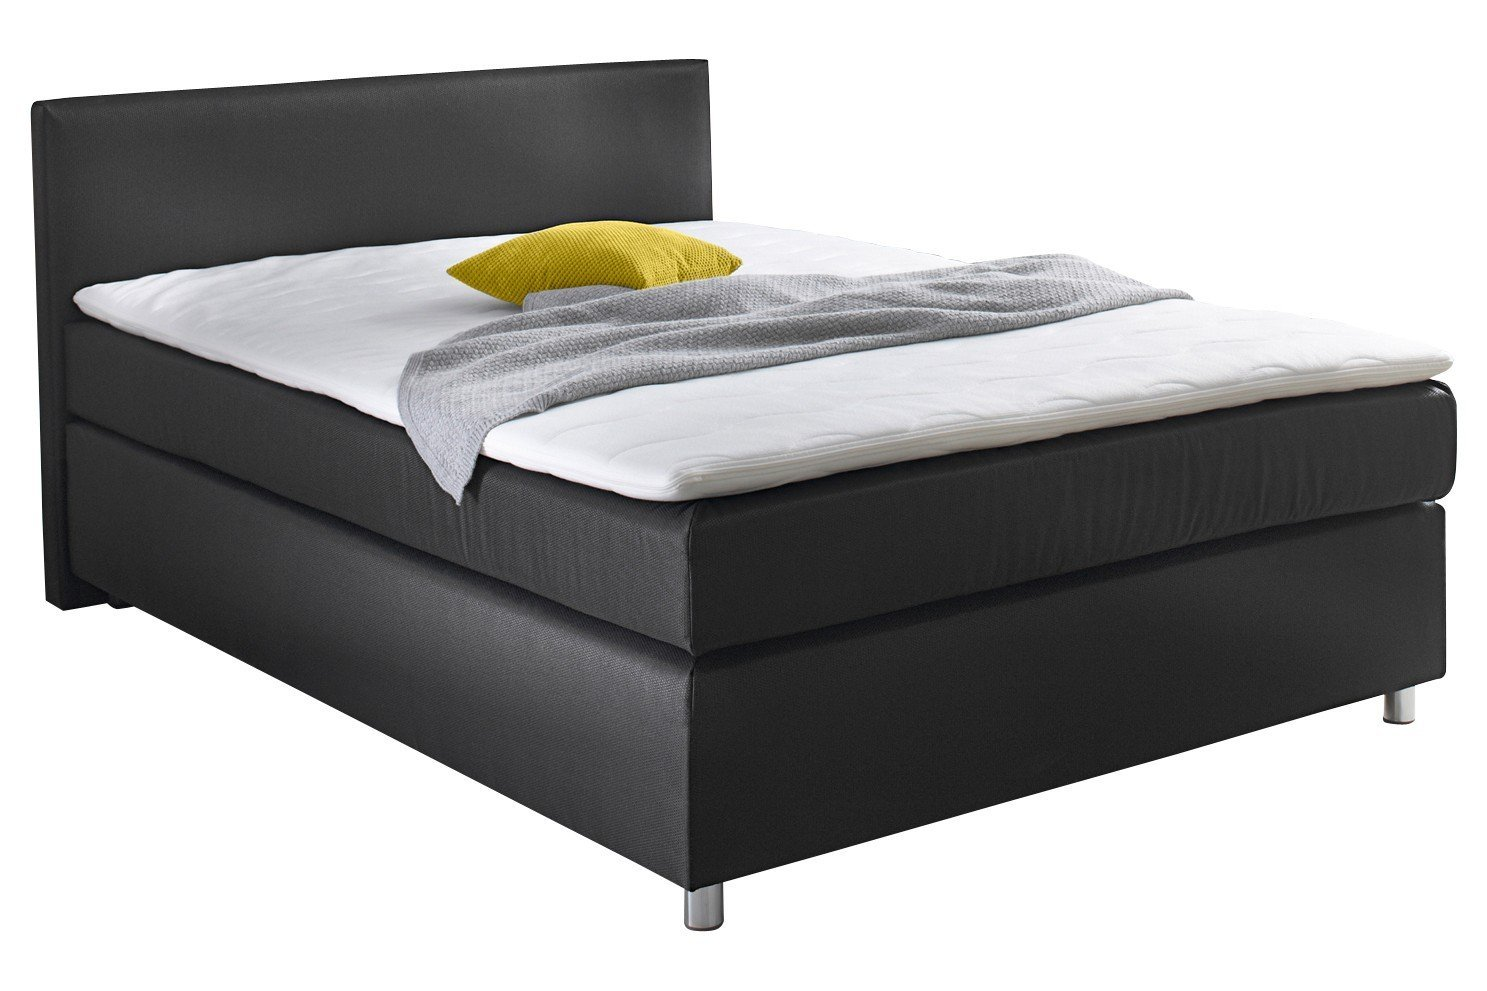 boxspring einzelbett test vergleich top 10 im juli 2018. Black Bedroom Furniture Sets. Home Design Ideas